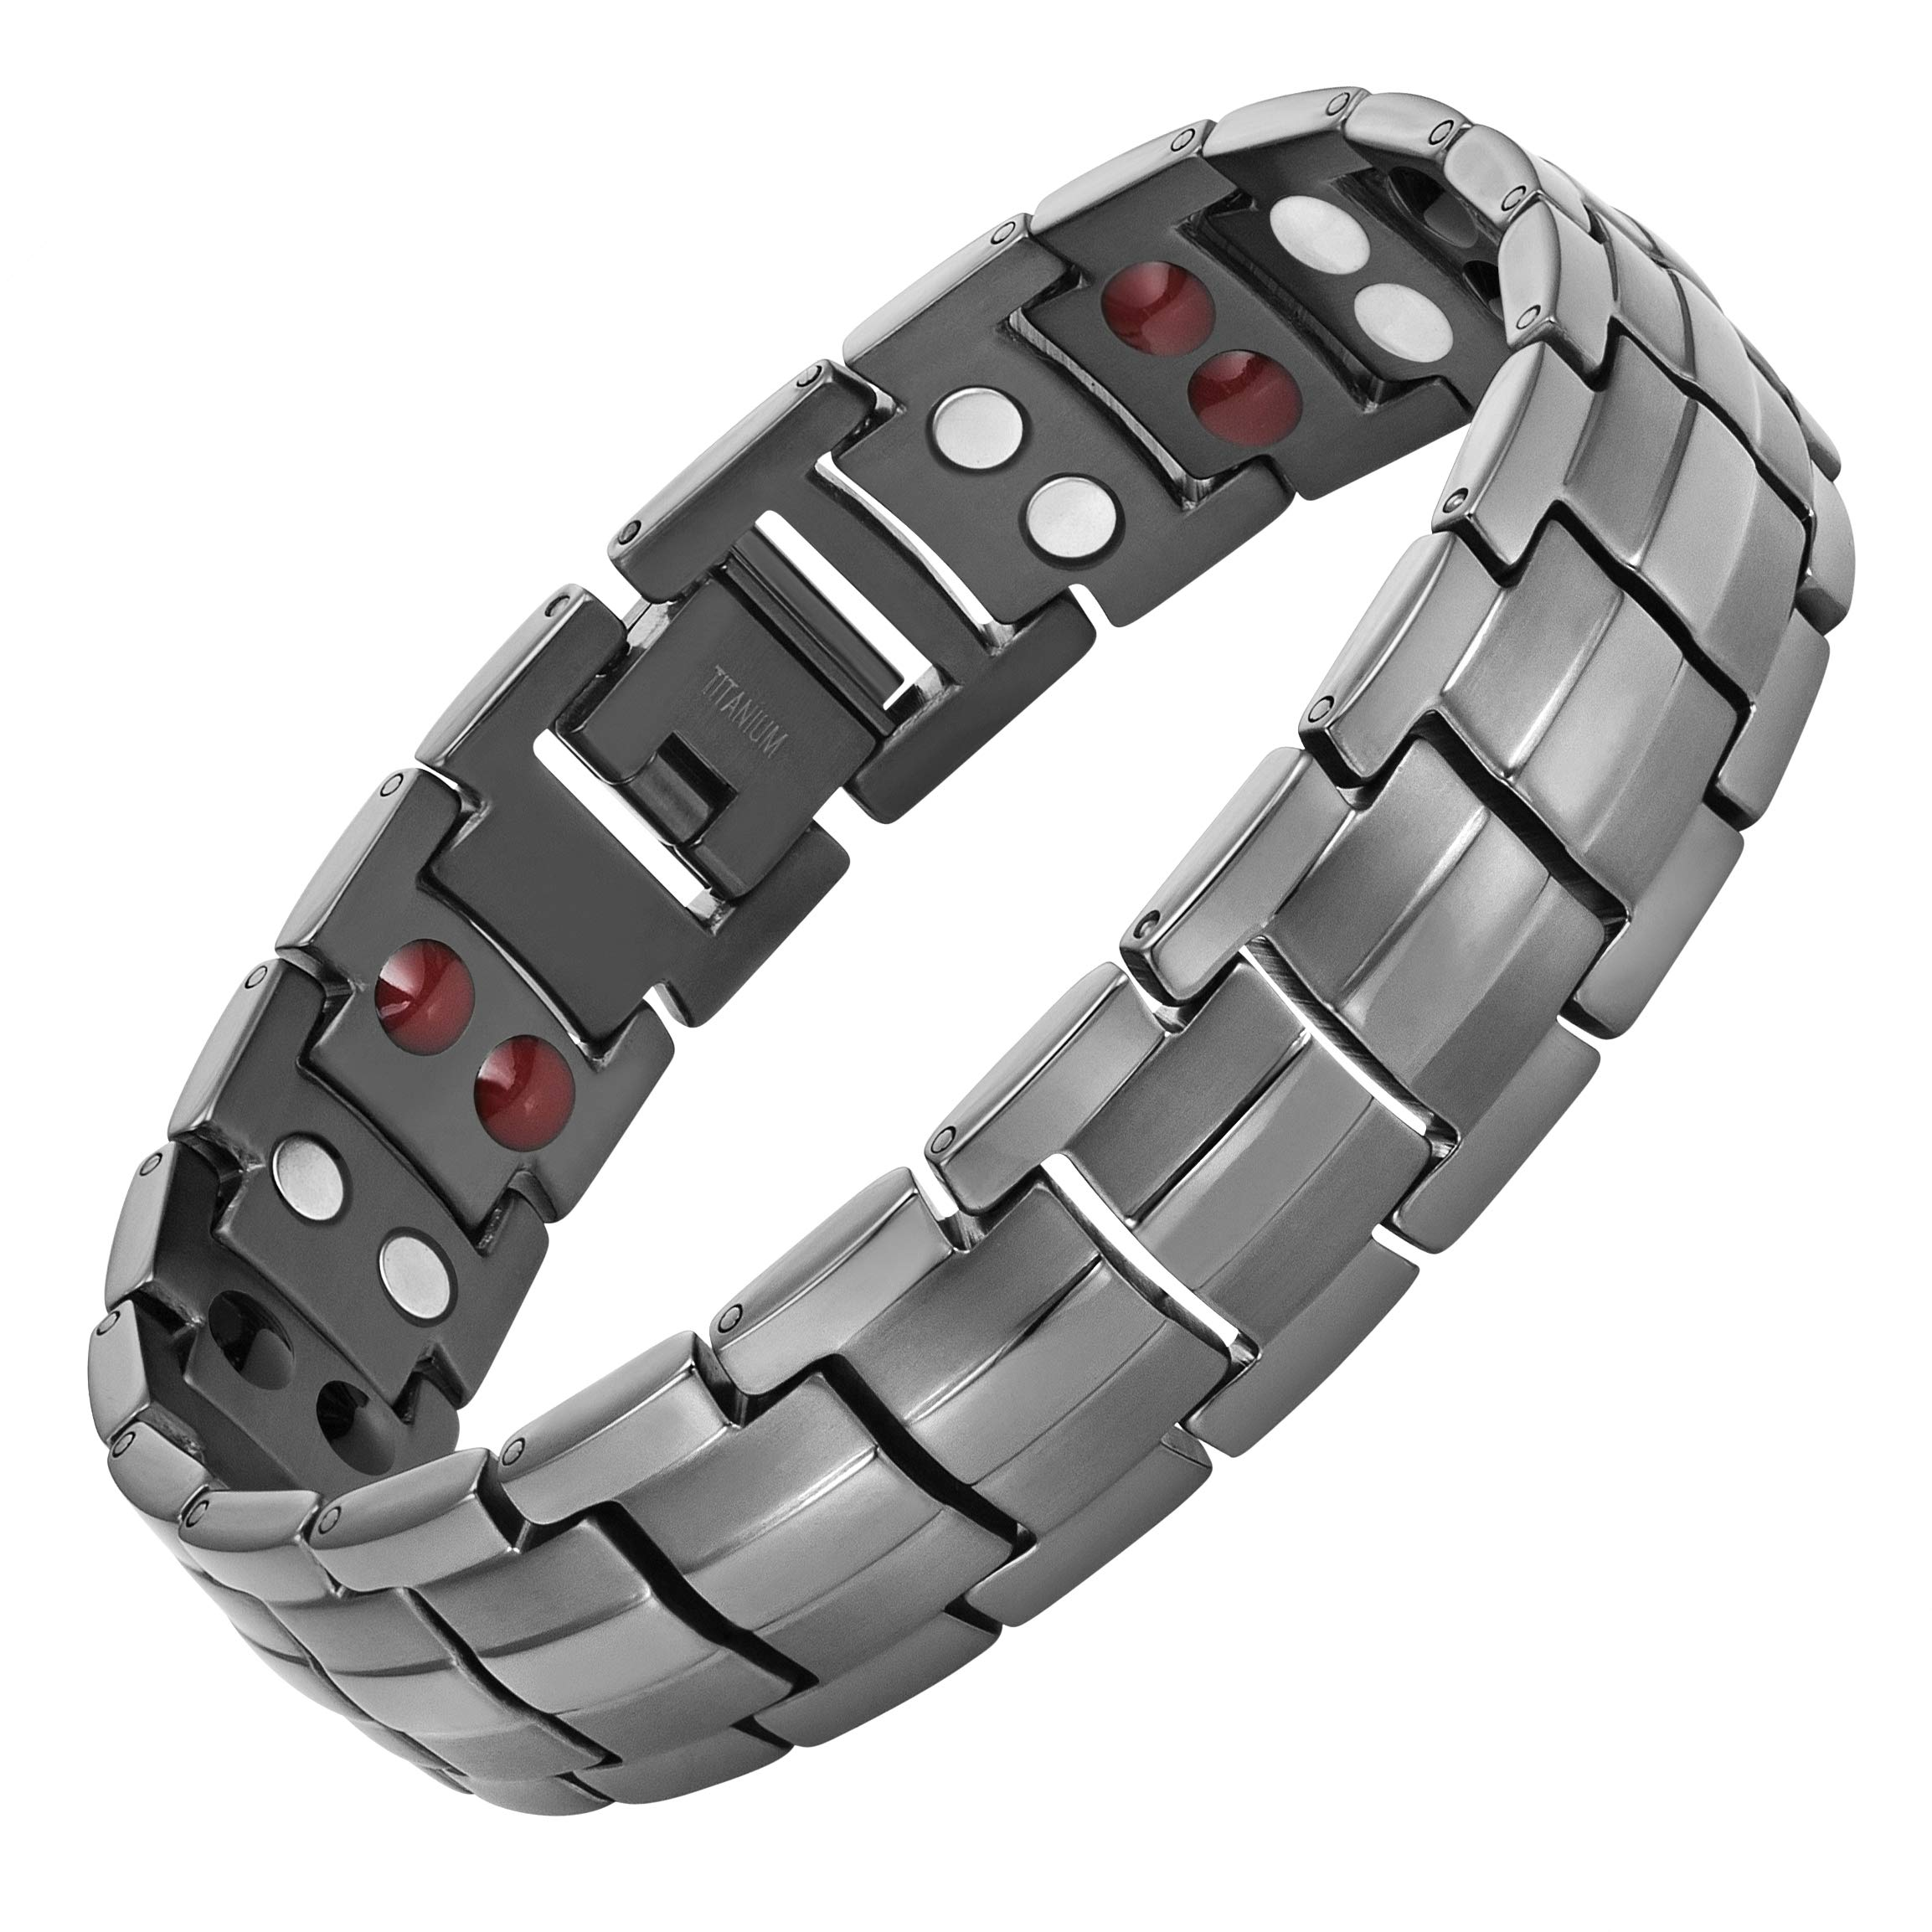 Willis Judd Double Strength 4 Element Titanium Magnetic Therapy Bracelet for Arthritis Pain Relief Gunmetal Colour Adjustable by Willis Judd